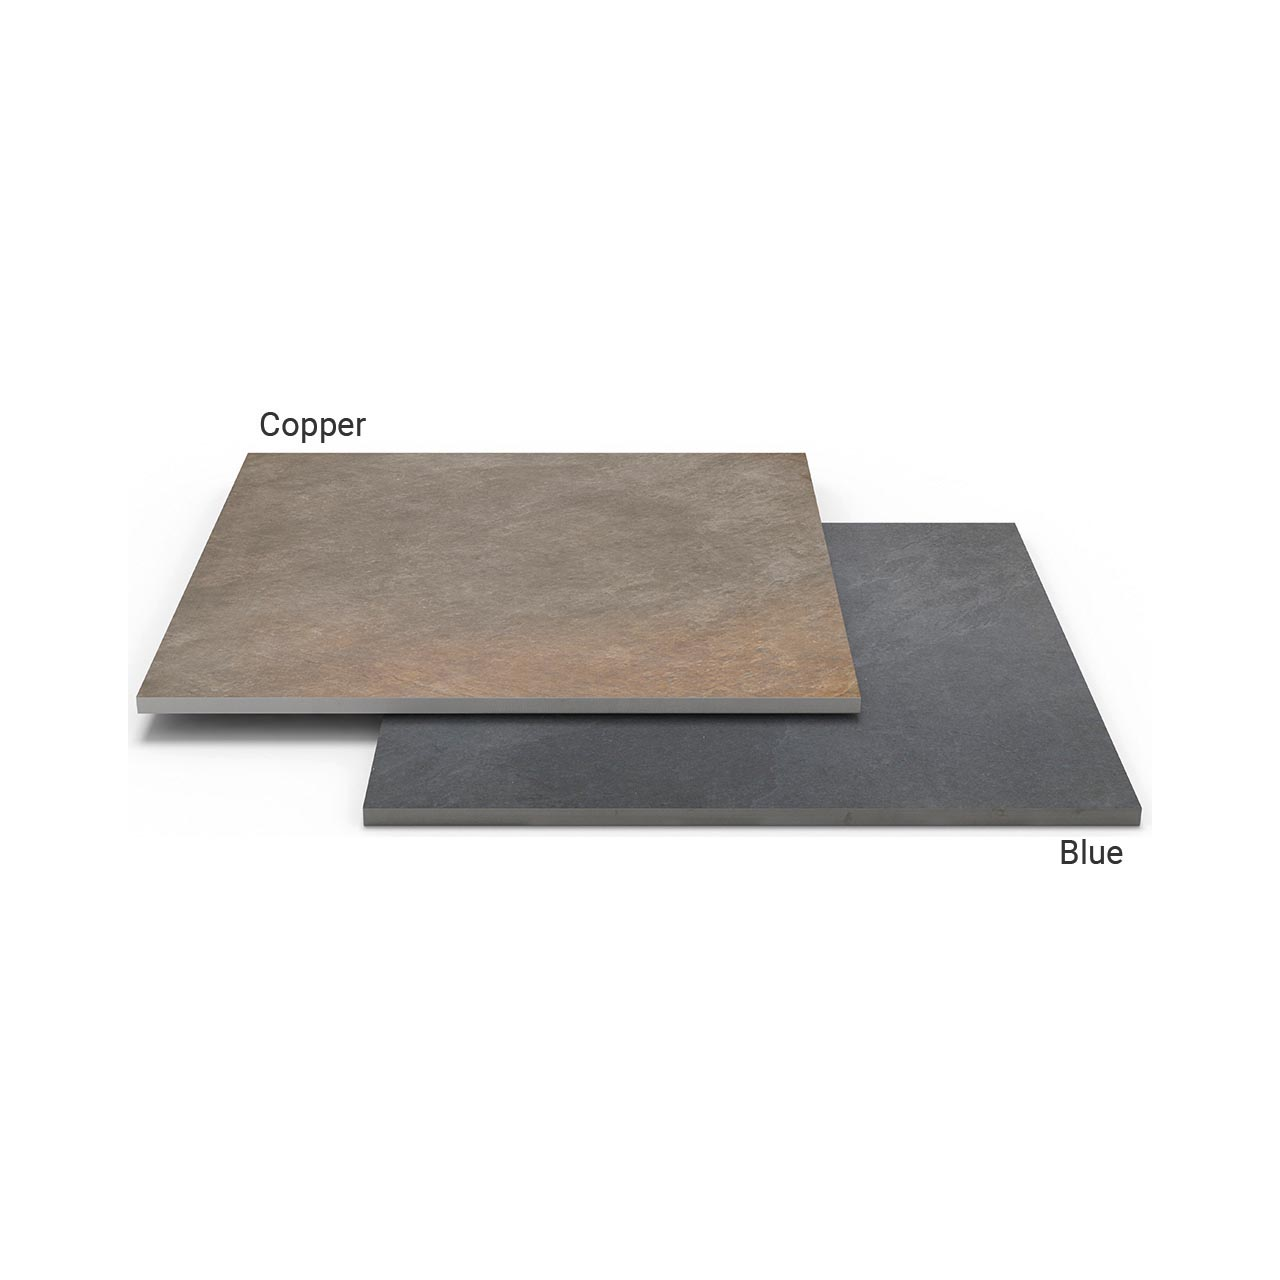 Lucent Paving 4 Size Project Pack 16.89m² Blue image 0